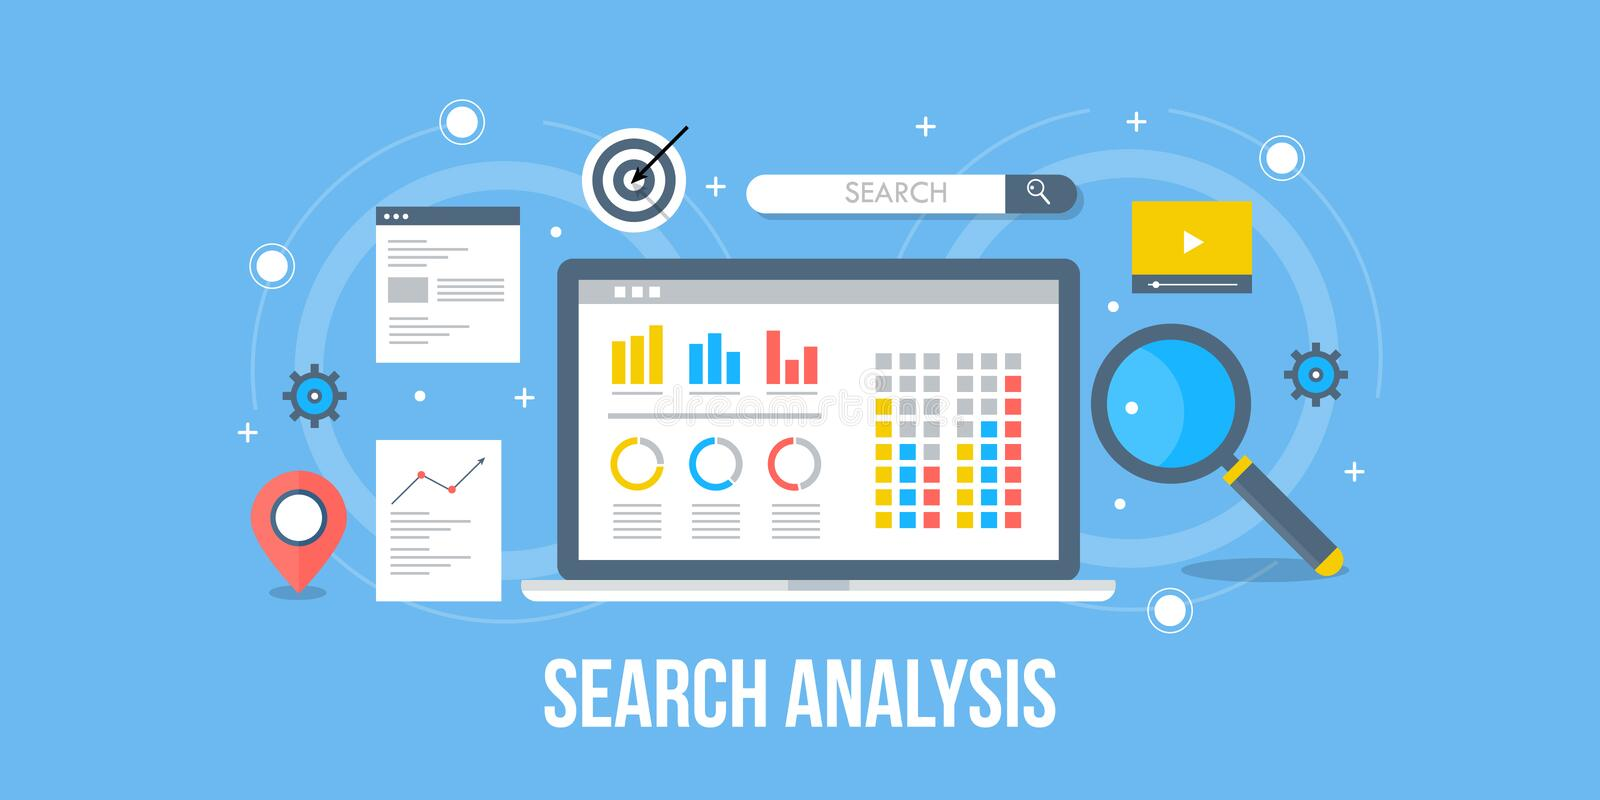 Search analysis -Search for business analysis - search for marketing information. Flat design analytic banner. royalty free illustration